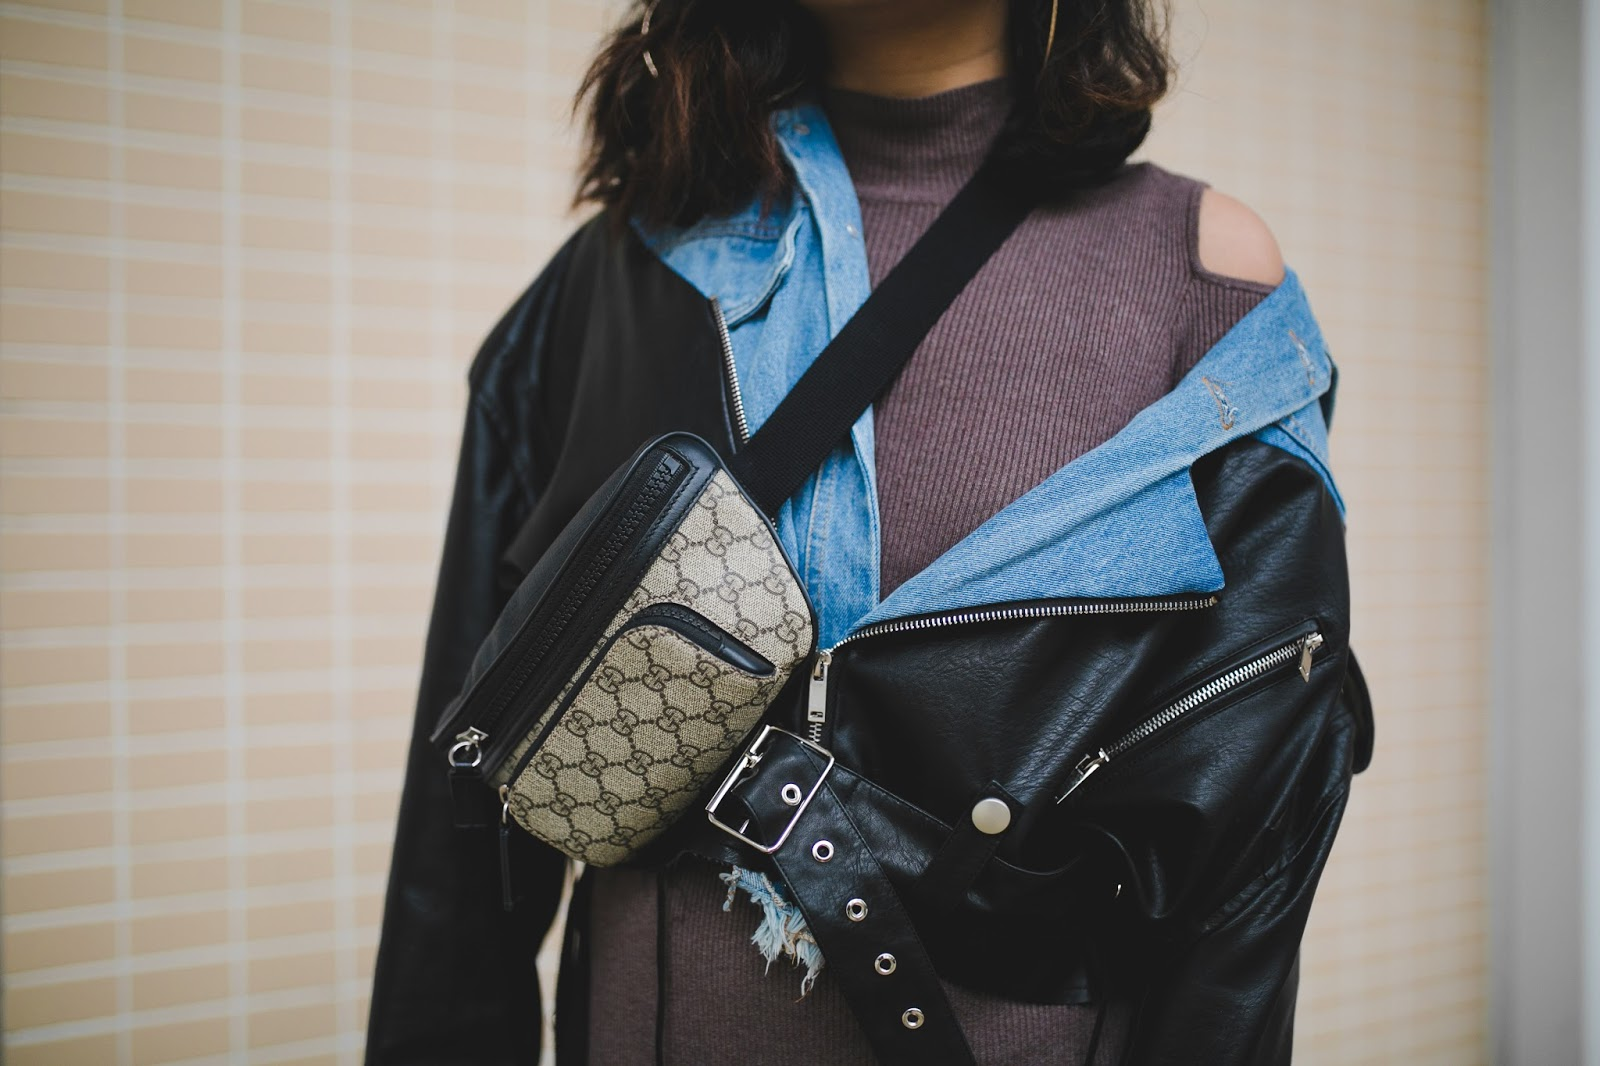 Macau Fashion blogger outfit wearing Gucci bag